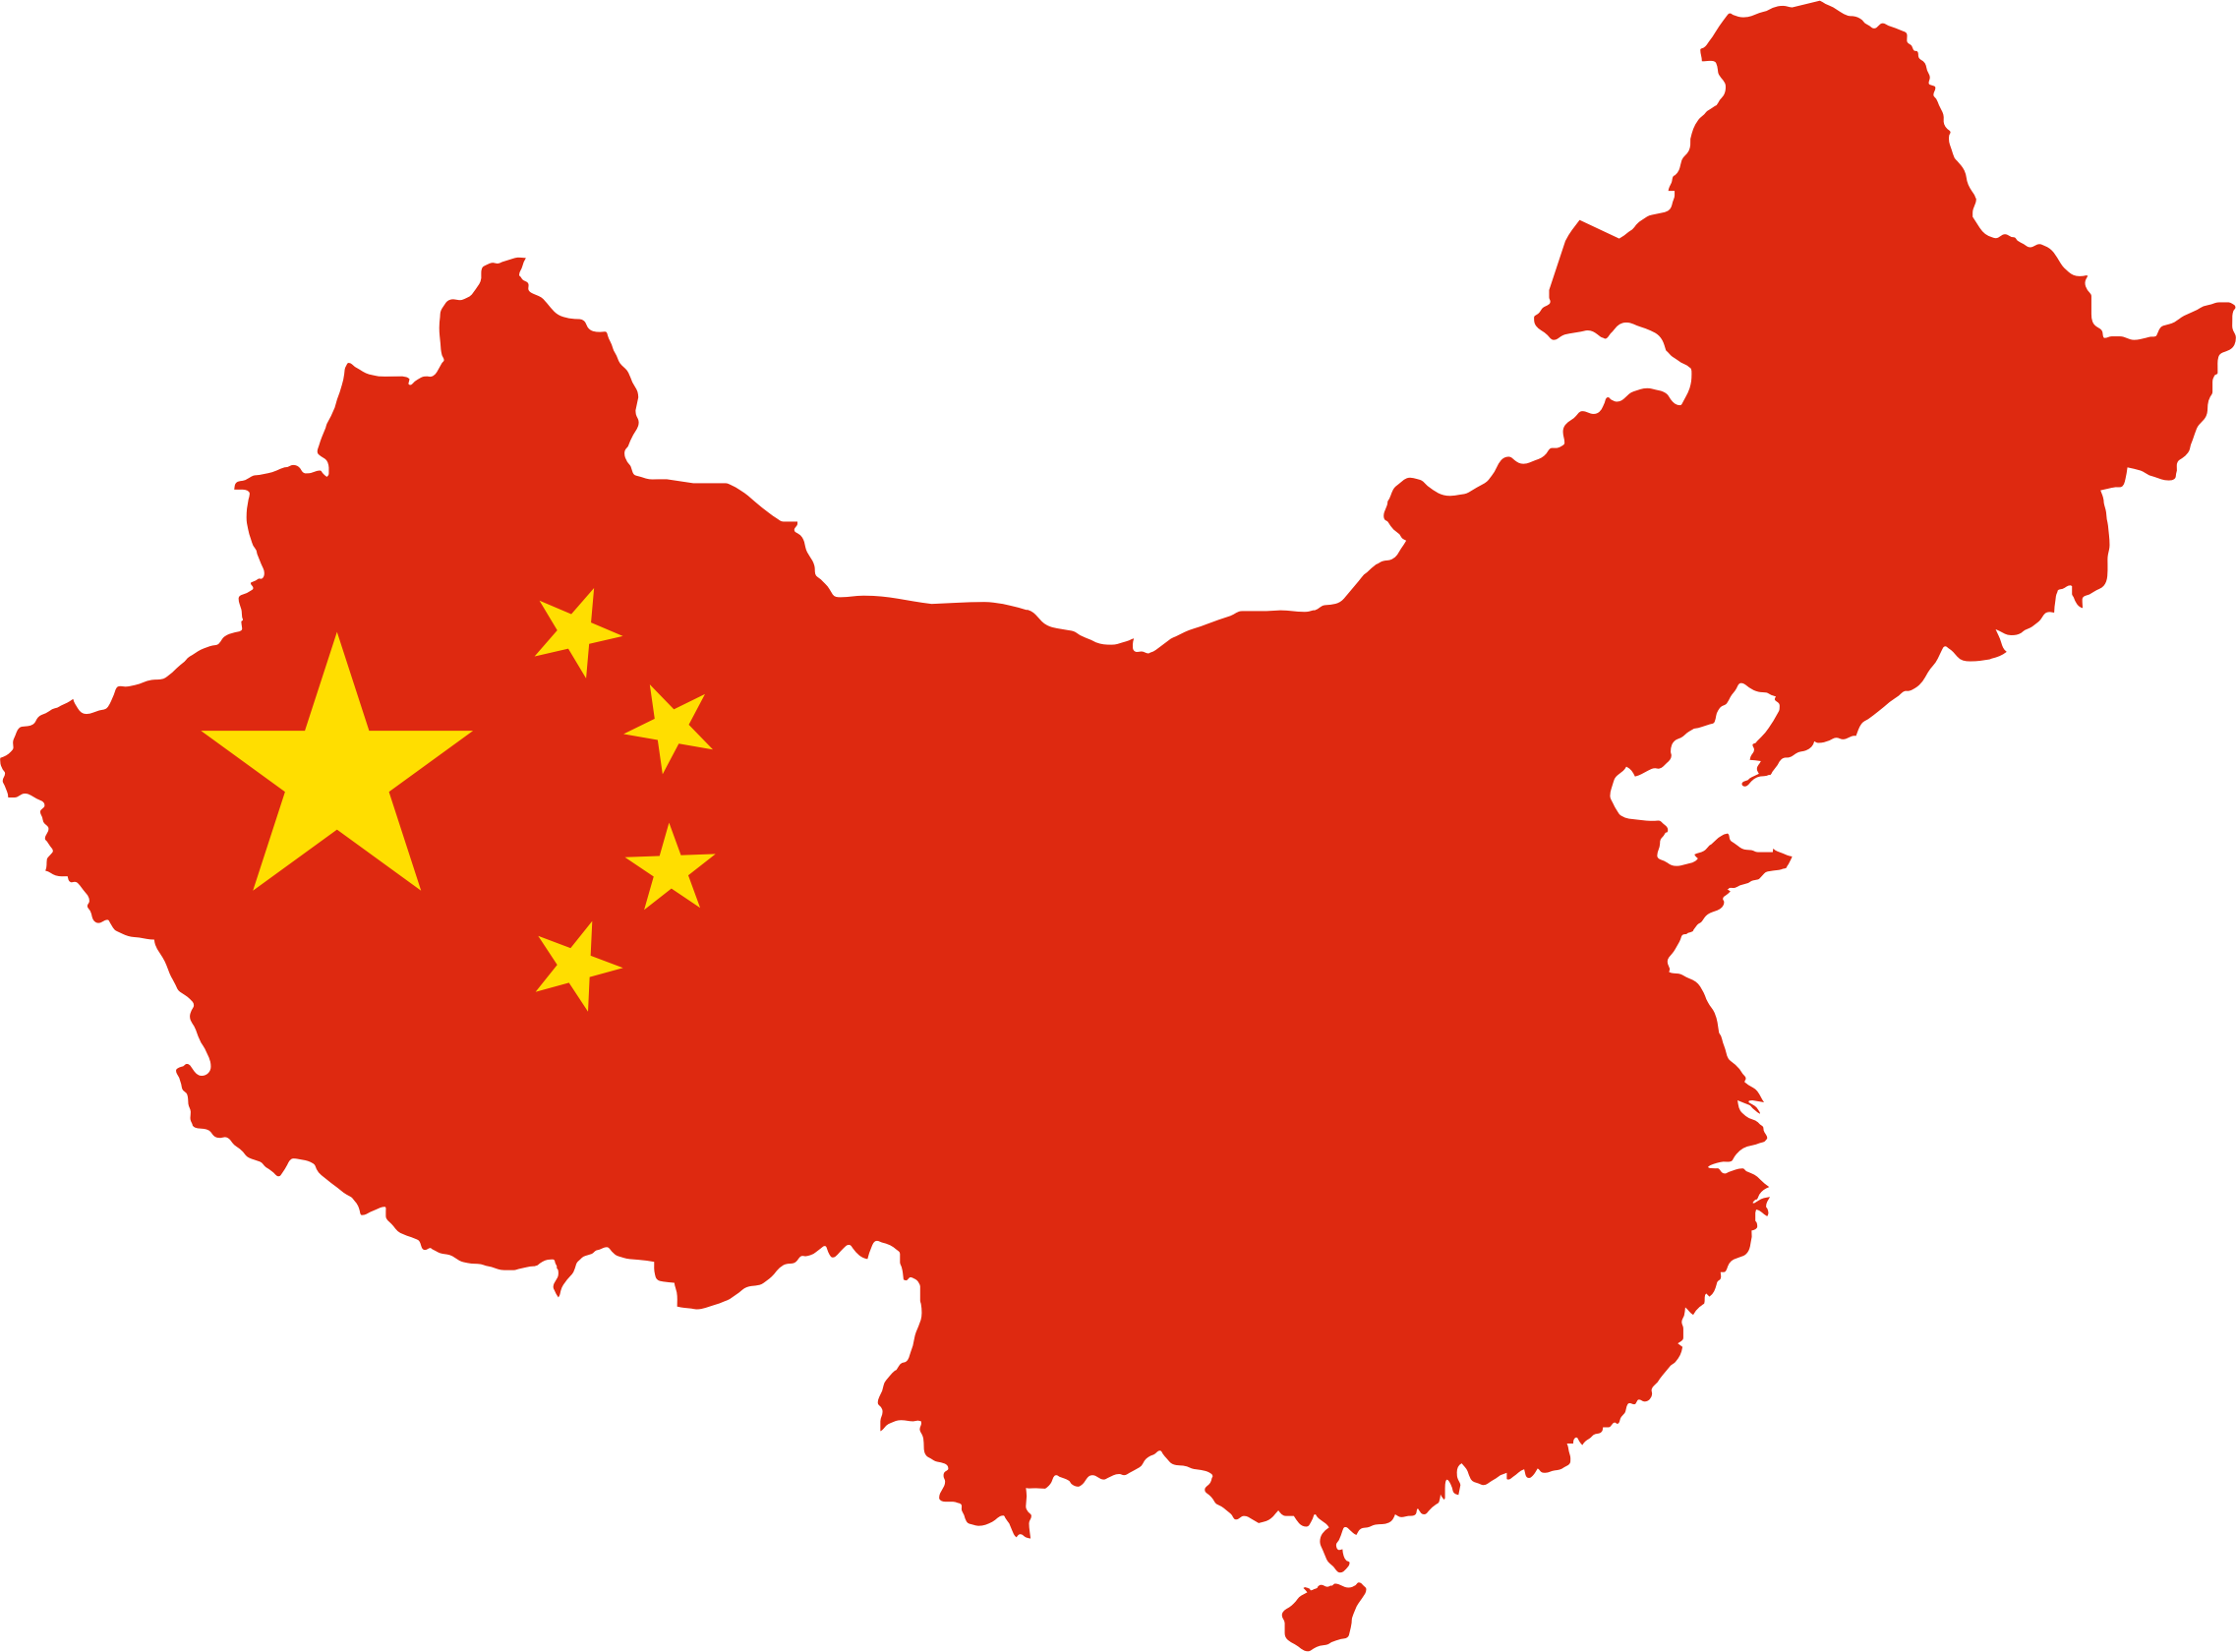 Clipart China Map Flag - Map of china